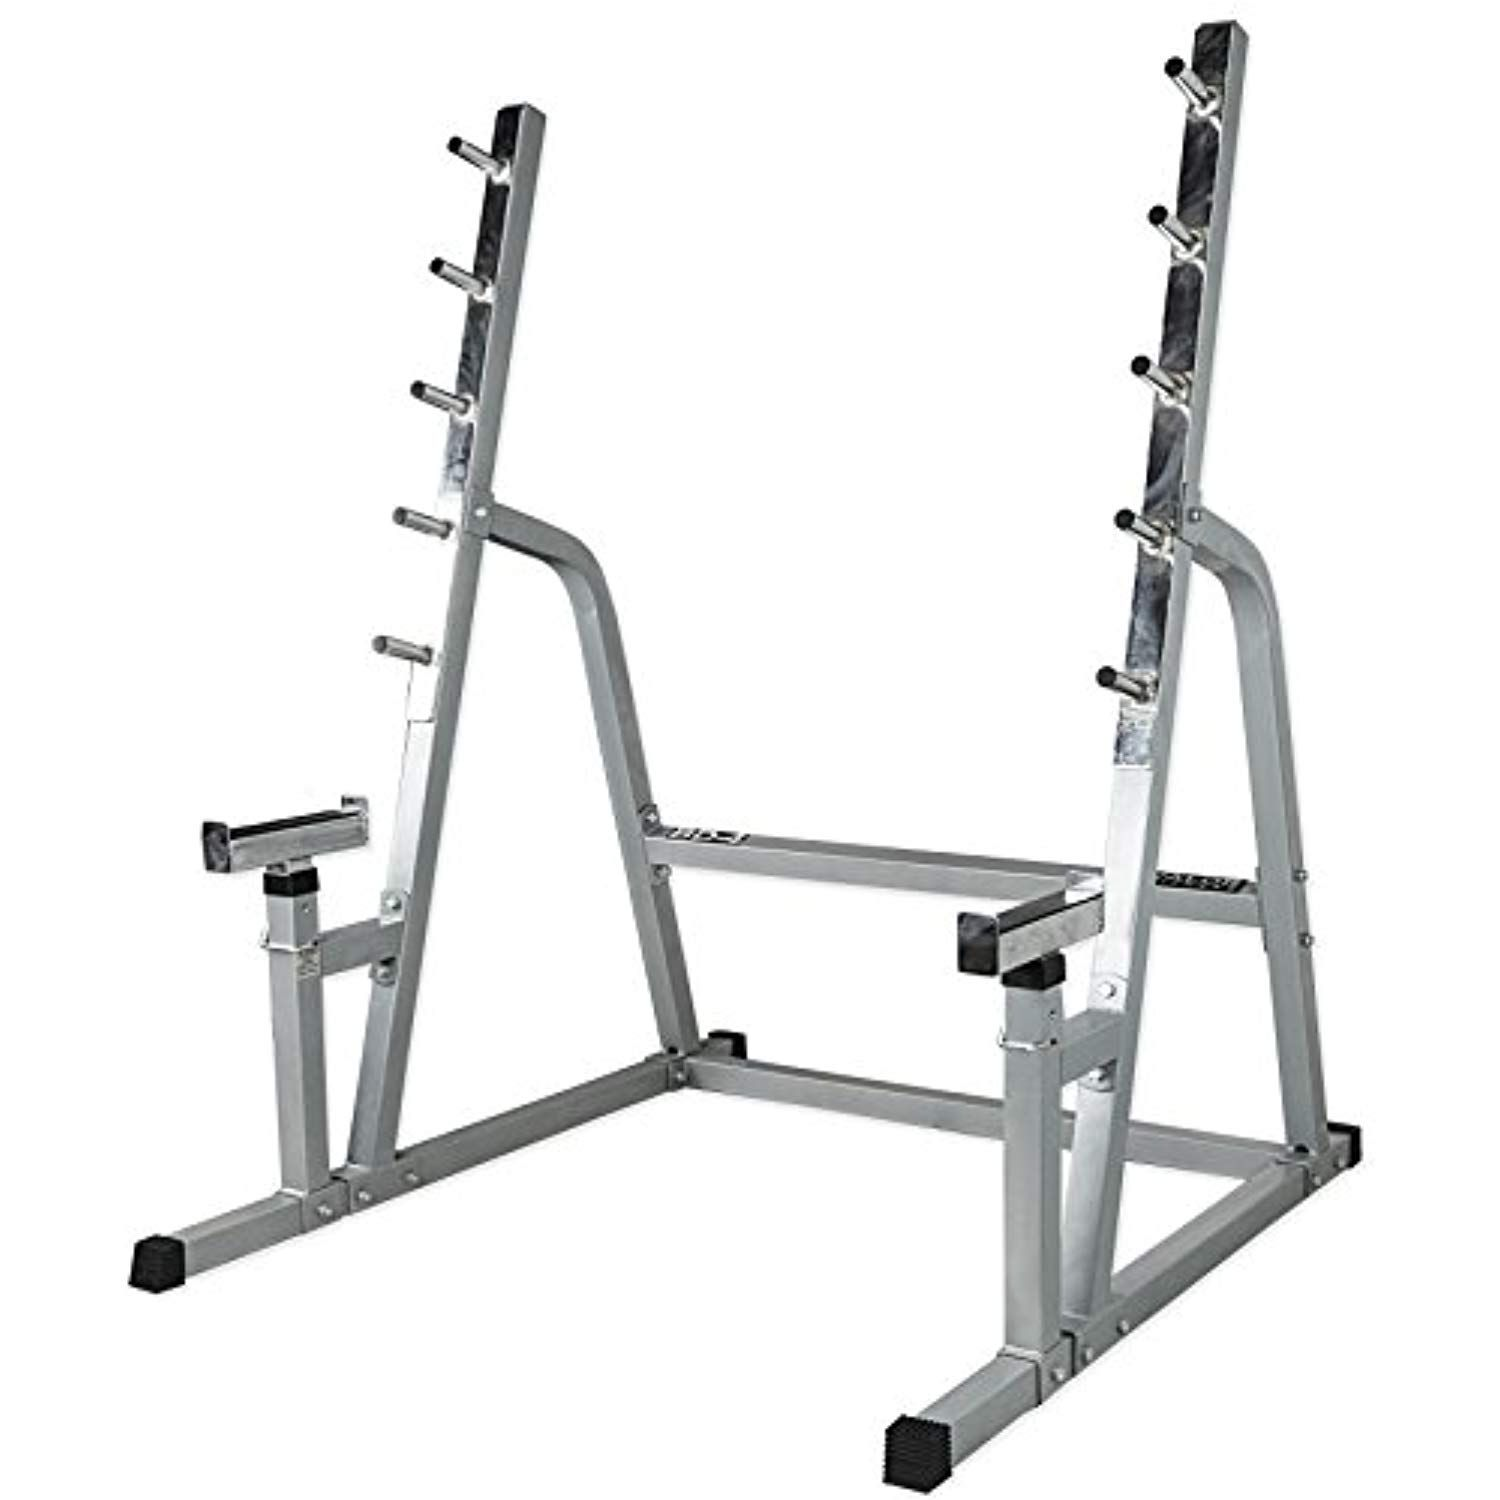 Valor Fitness Bd 4 Safety Squat Bench Rack Combo You Can Find More Details By Visiting The Image Link This Is An Affiliate L Squat Rack Squats At Home Gym